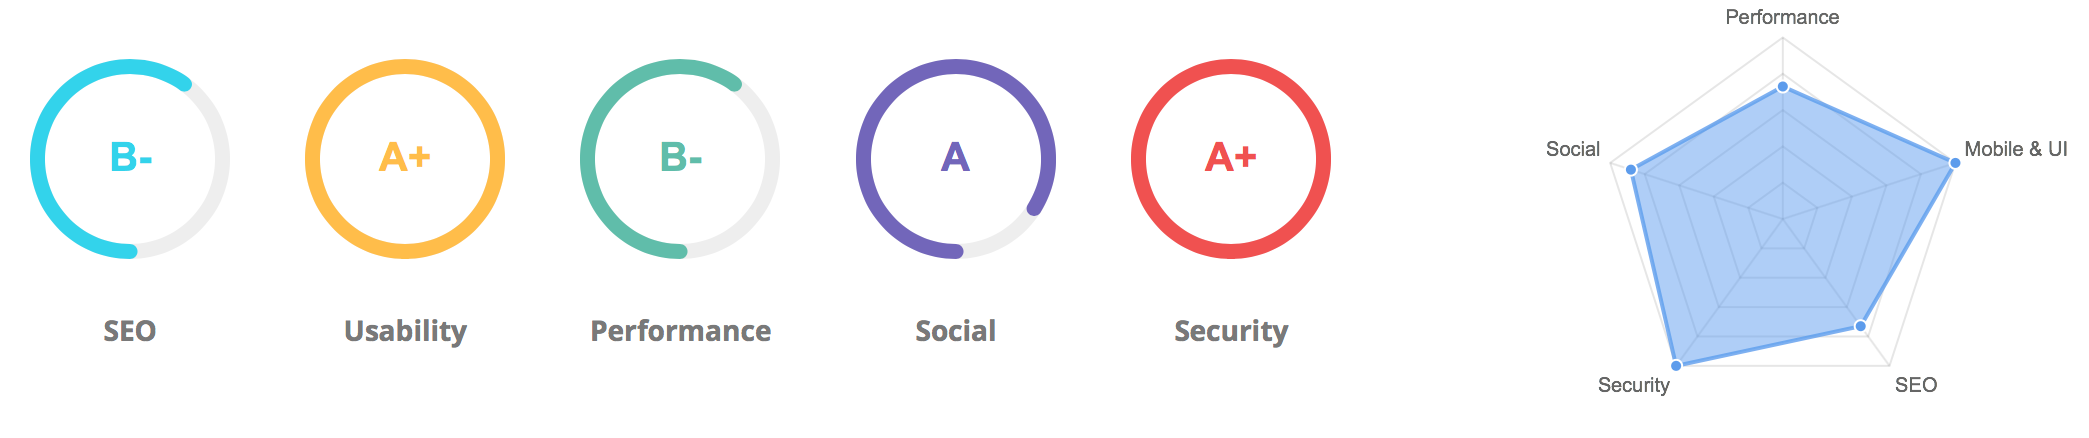 Website Audits Focus on SEO, Usability, Performance, Social Profiles and Security